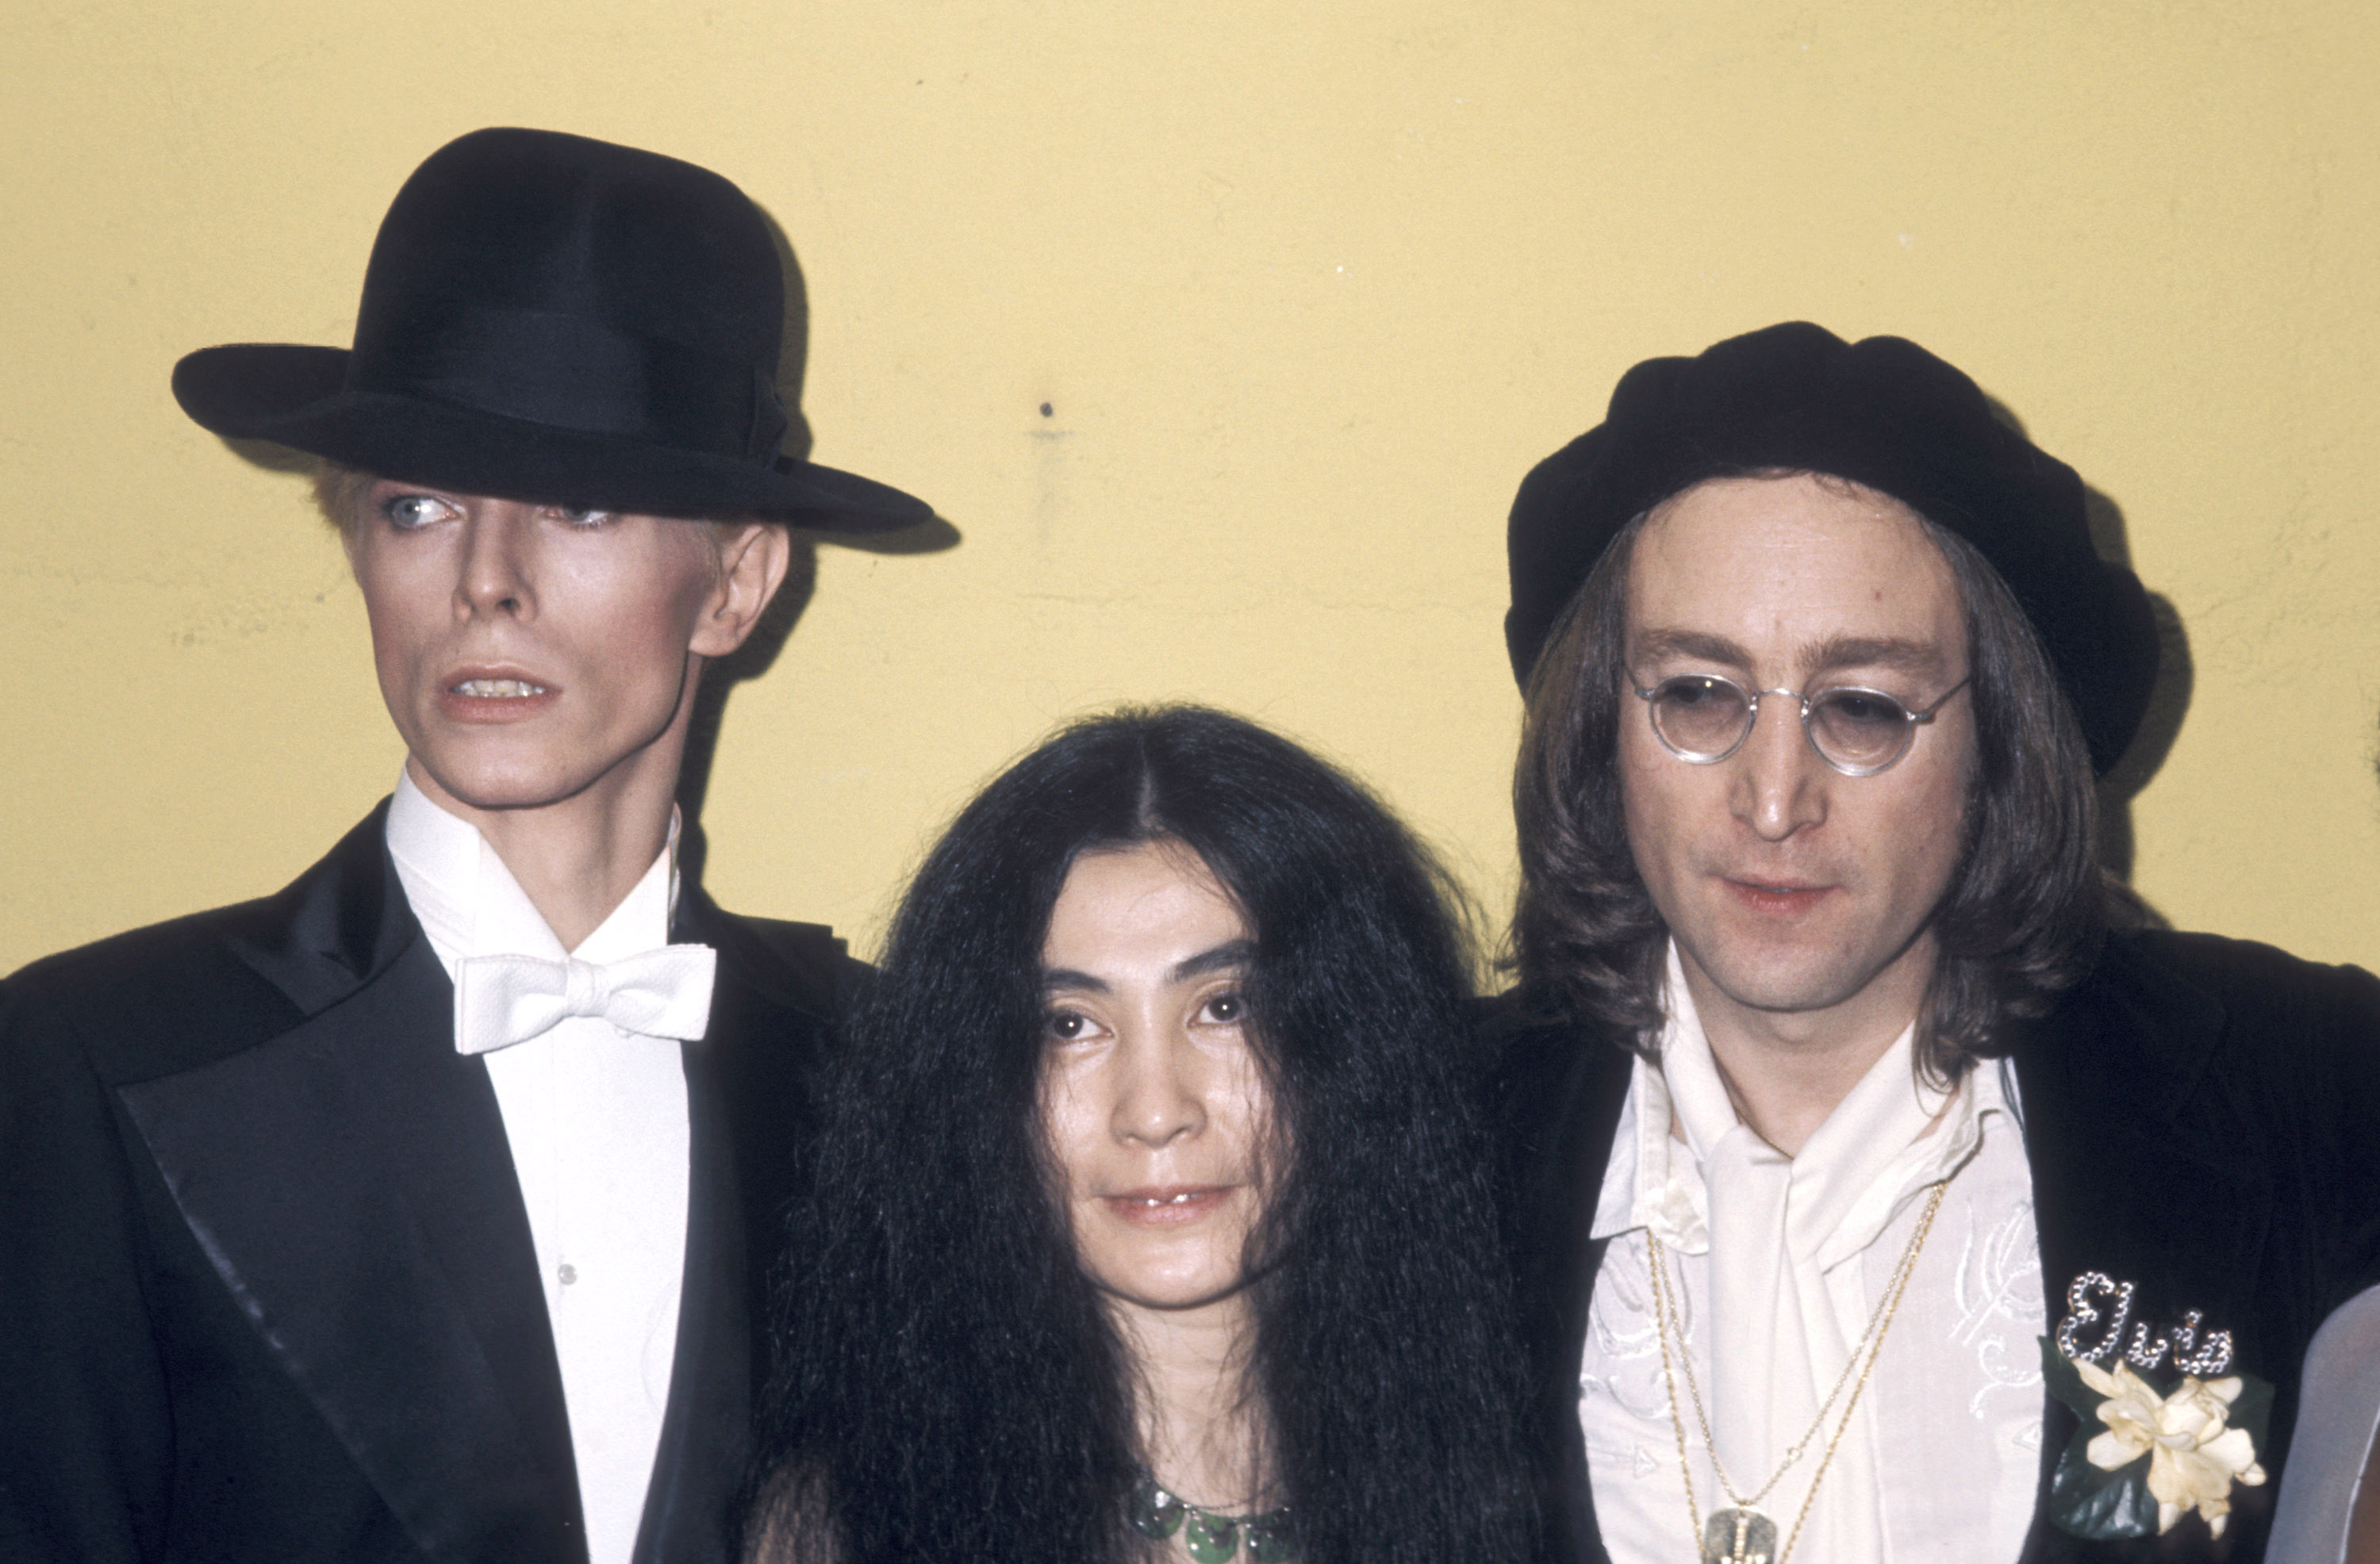 From left: David Bowie, Yoko Ono and John Lennon at the 17th Annual Grammy Awards on Feb. 28, 1975 in New York City.